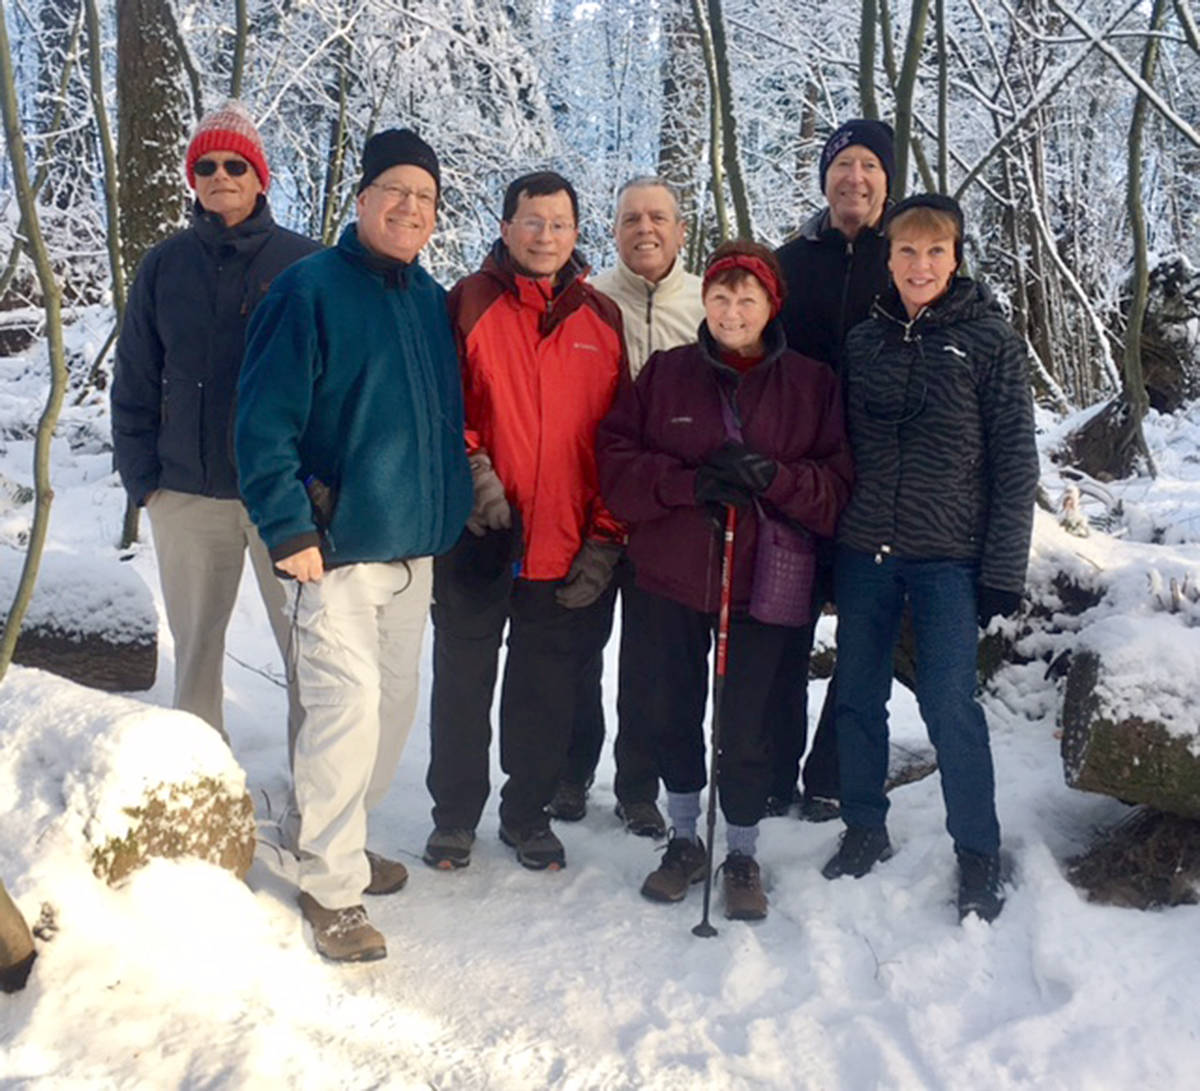 Members of the Surrey Trekkers Volkssport Club during a winter walk through the Langley Nicomekl Flats Area in 2018. (Len Colebert/Special to Langley Advance Times)